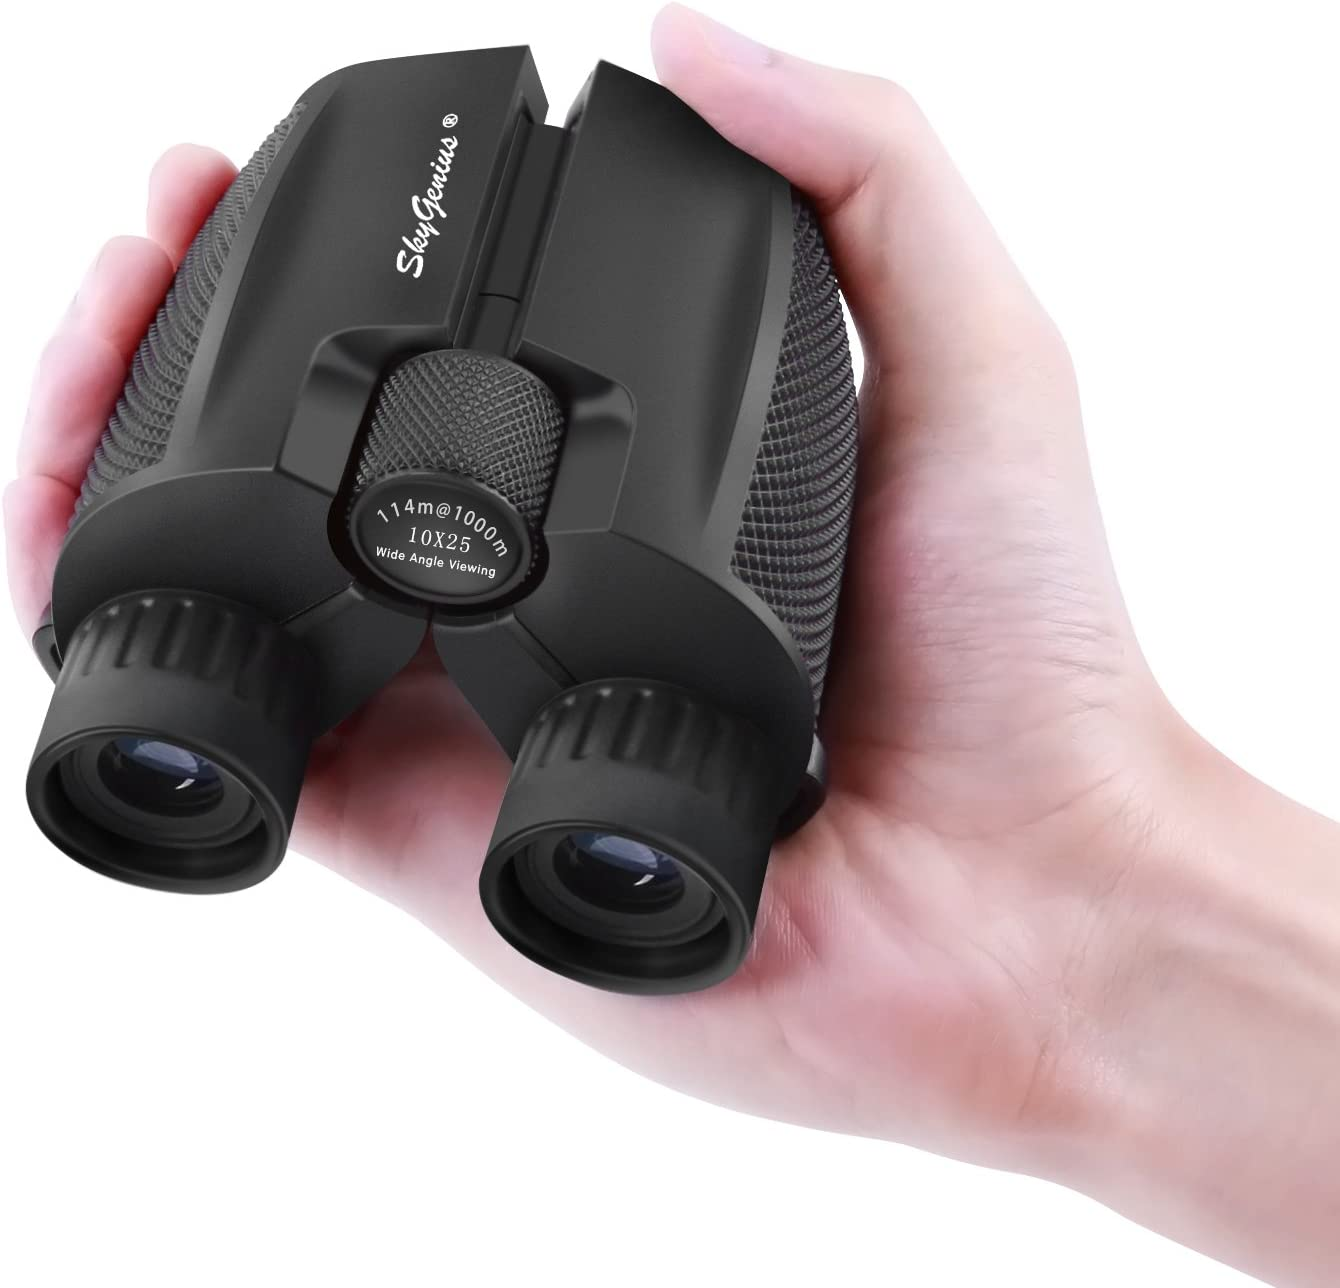 SkyGenius 10x25 Compact Binoculars for Bird Watching, High Powered Binoculars Pocket Size for Theater, Concerts, Travel, BAK4 Roof Prism FMC Lens Binoculars for Adults Kids